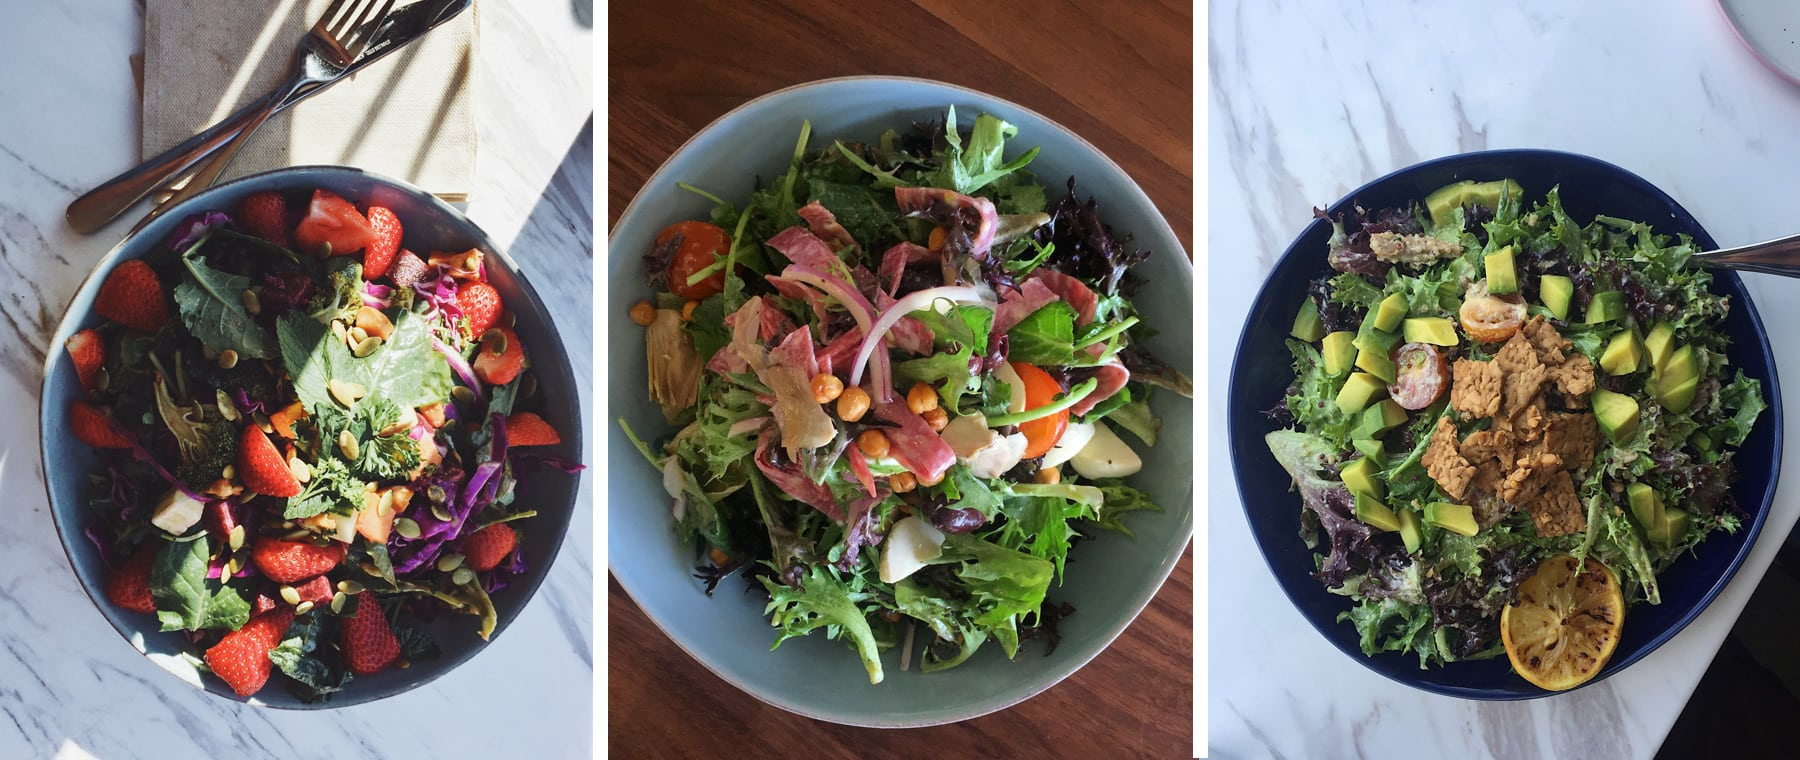 New European-style cafe in Market aims to revolutionize salads